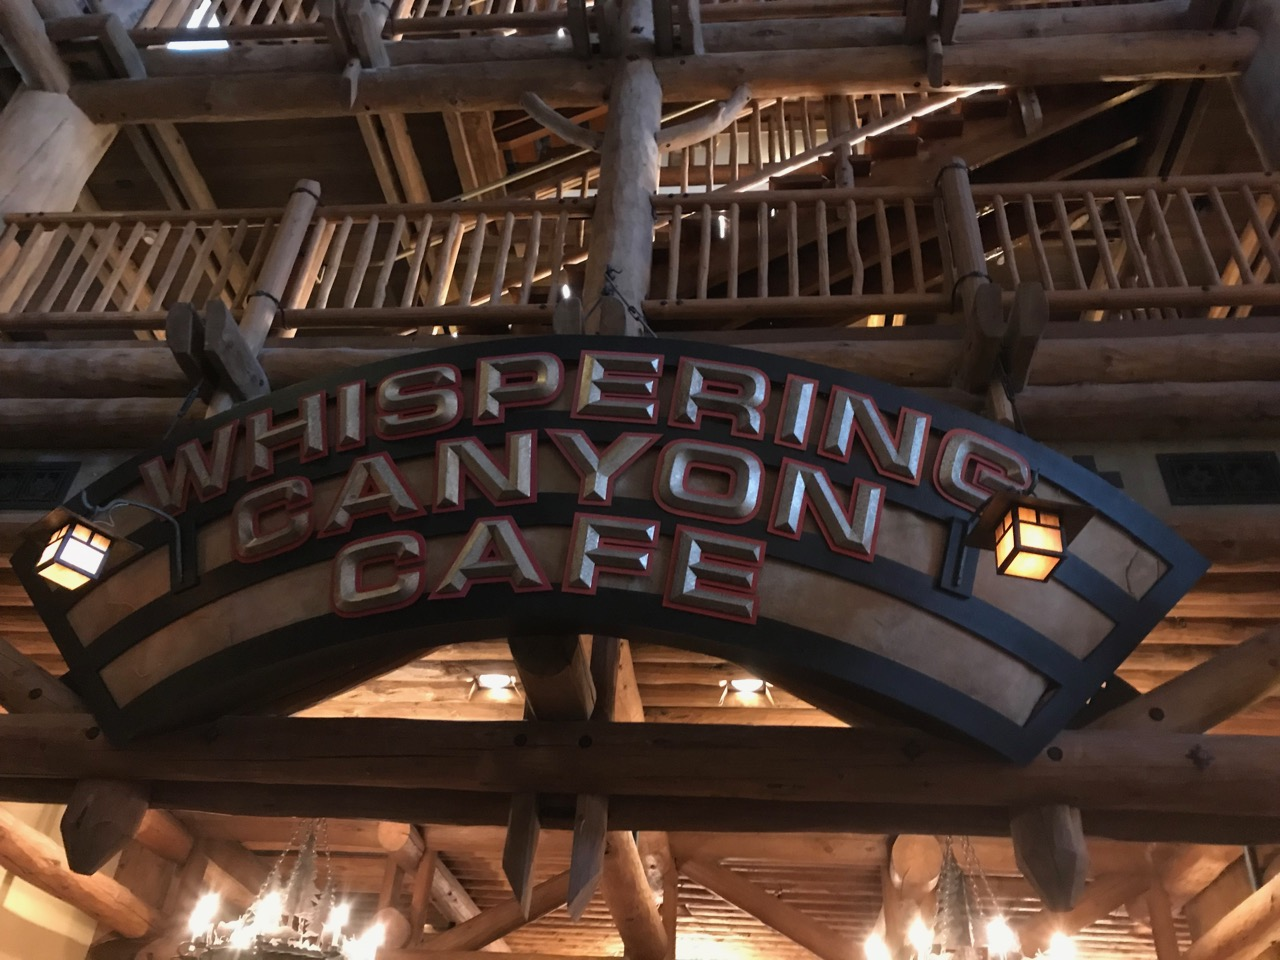 Disney\'s Wilderness Lodge - Whispering Canyon Cafe